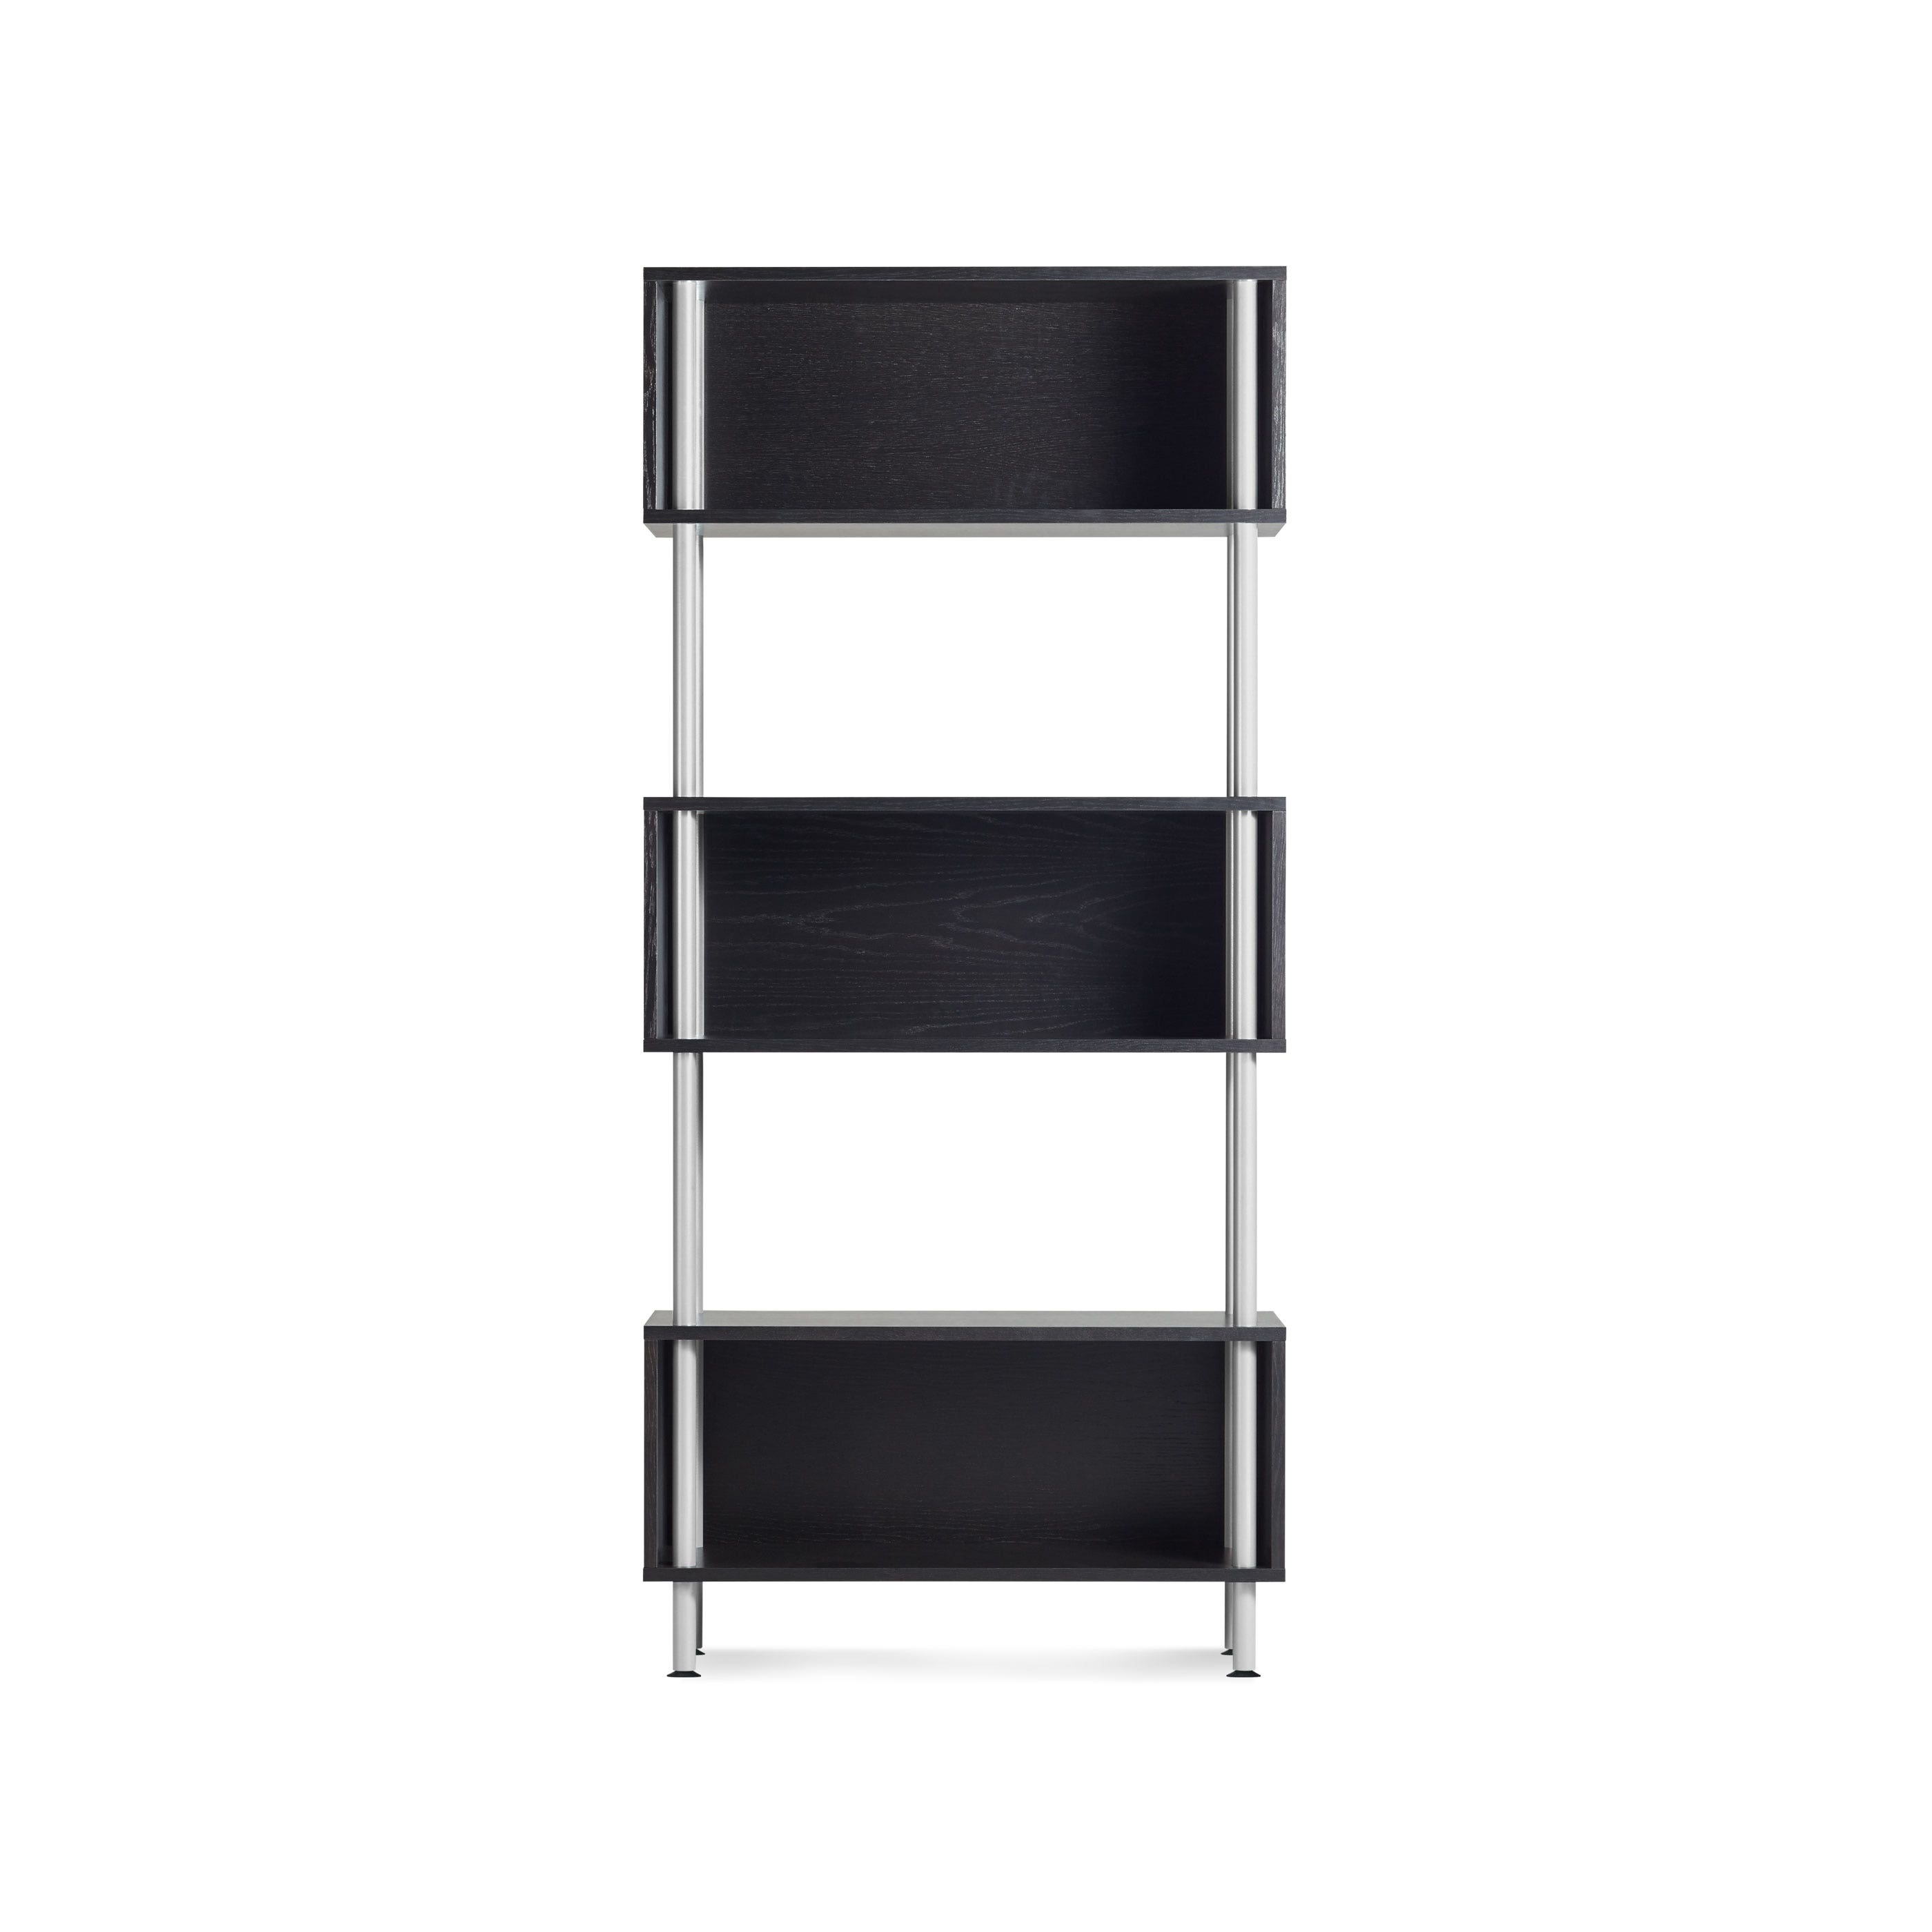 Previous image Black Chicago 3 Box Modern Shelving Unit ...